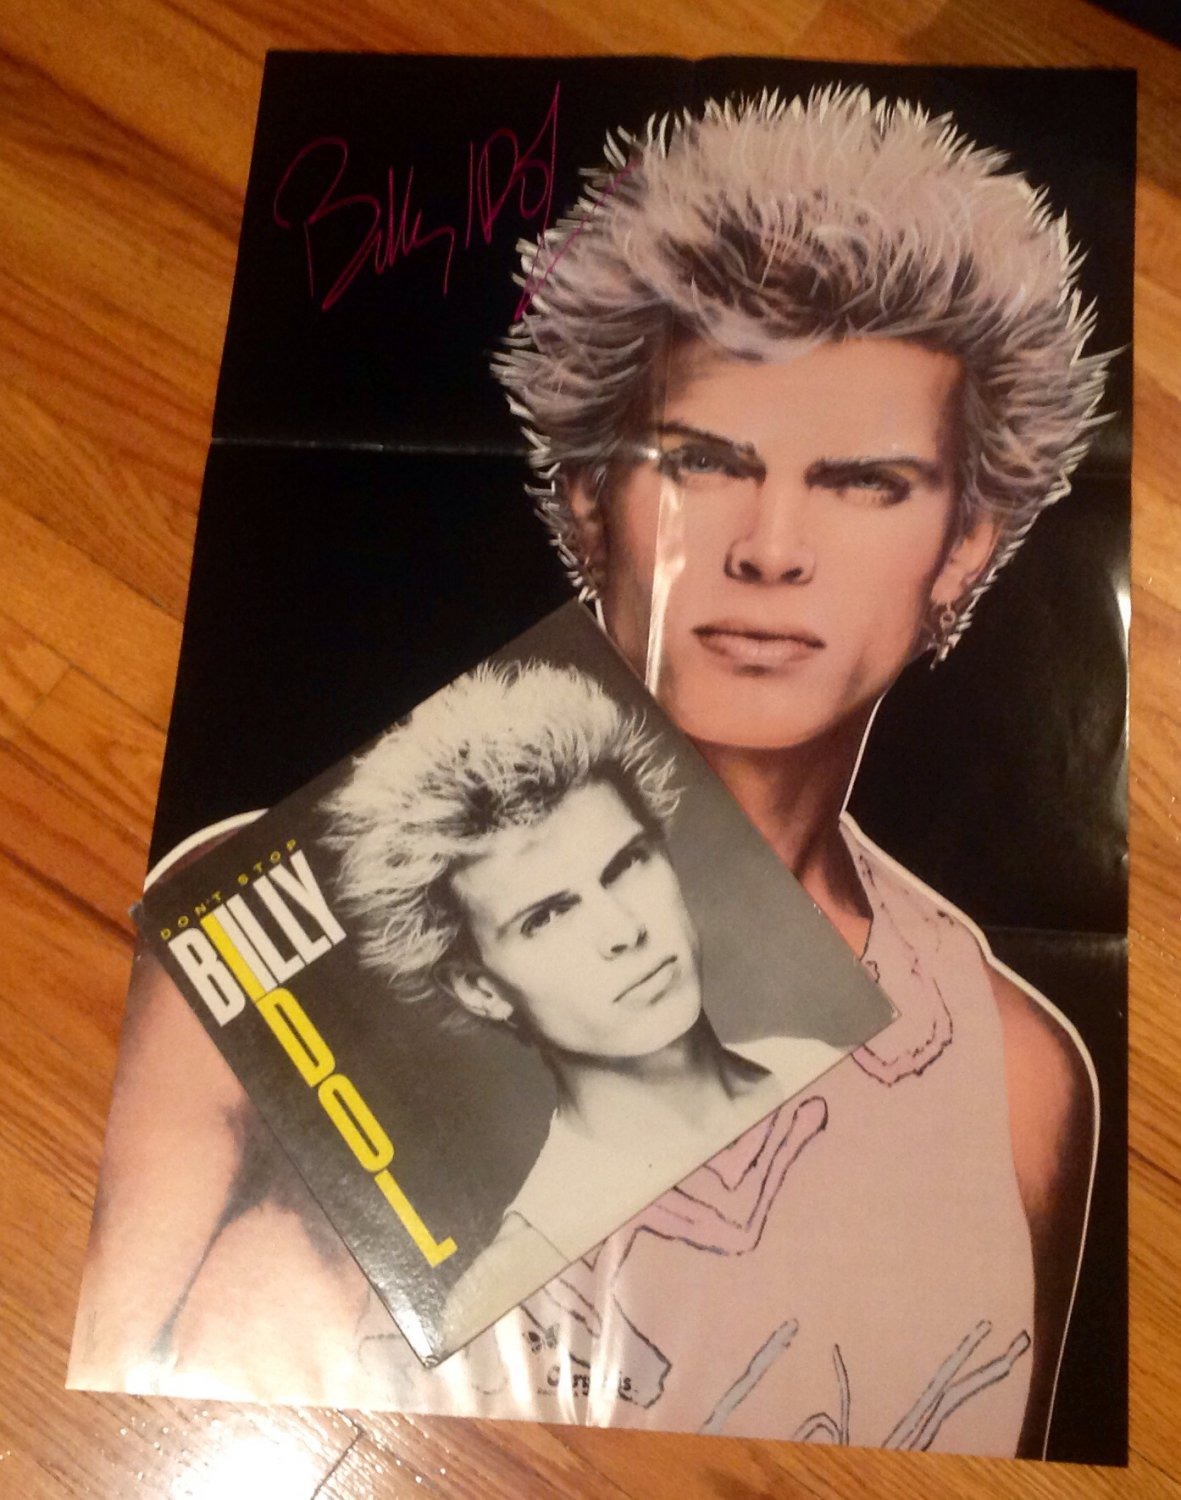 BILLY IDOL - DON'T STOP - 4 TRACK EP with POSTER Vinyl